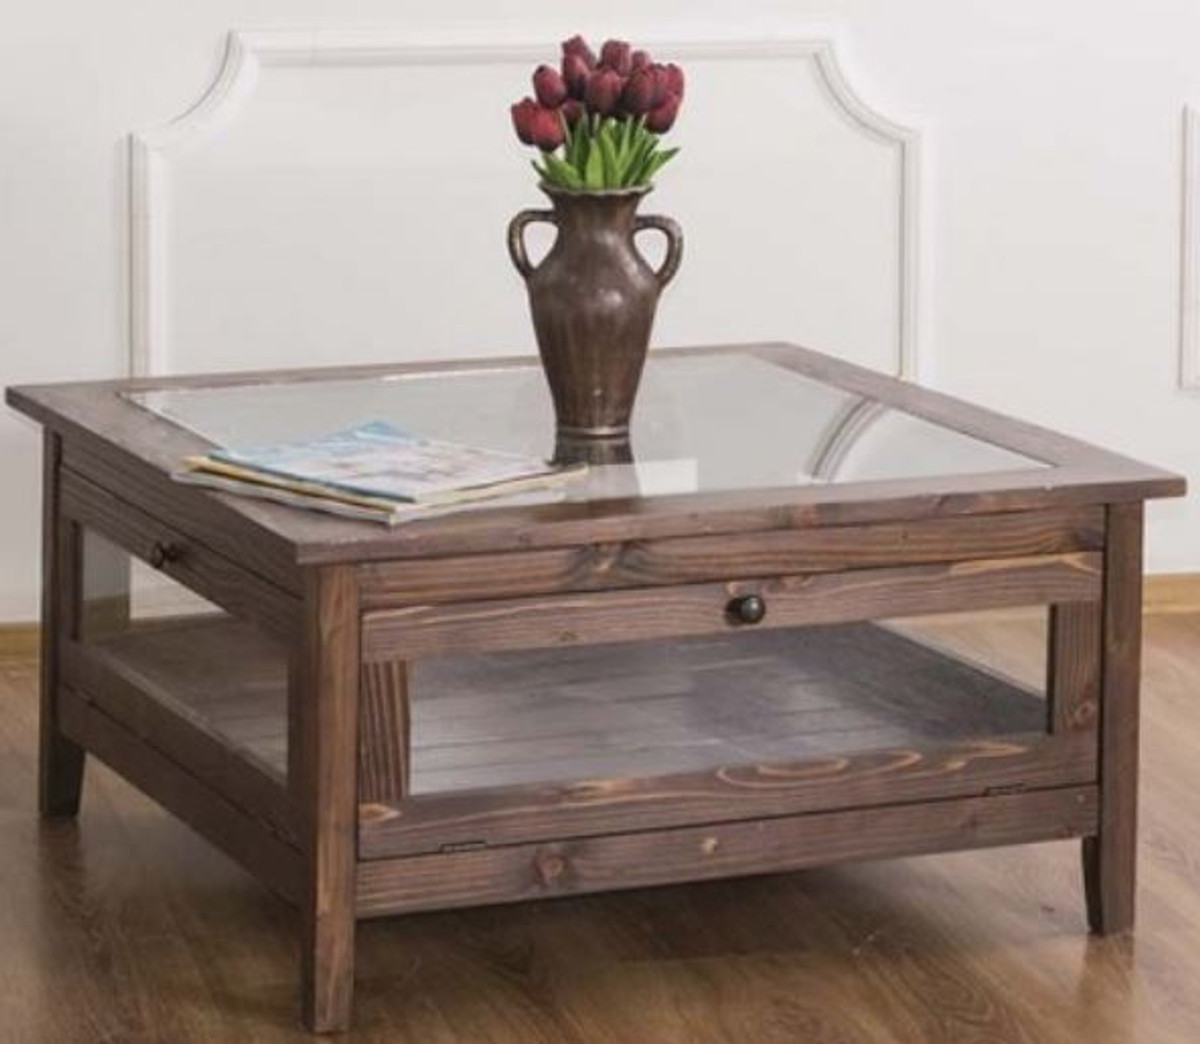 casa padrino country style coffee table with glass top brown 90 x 90 x h 45 cm solid wood living room table living room furniture in country